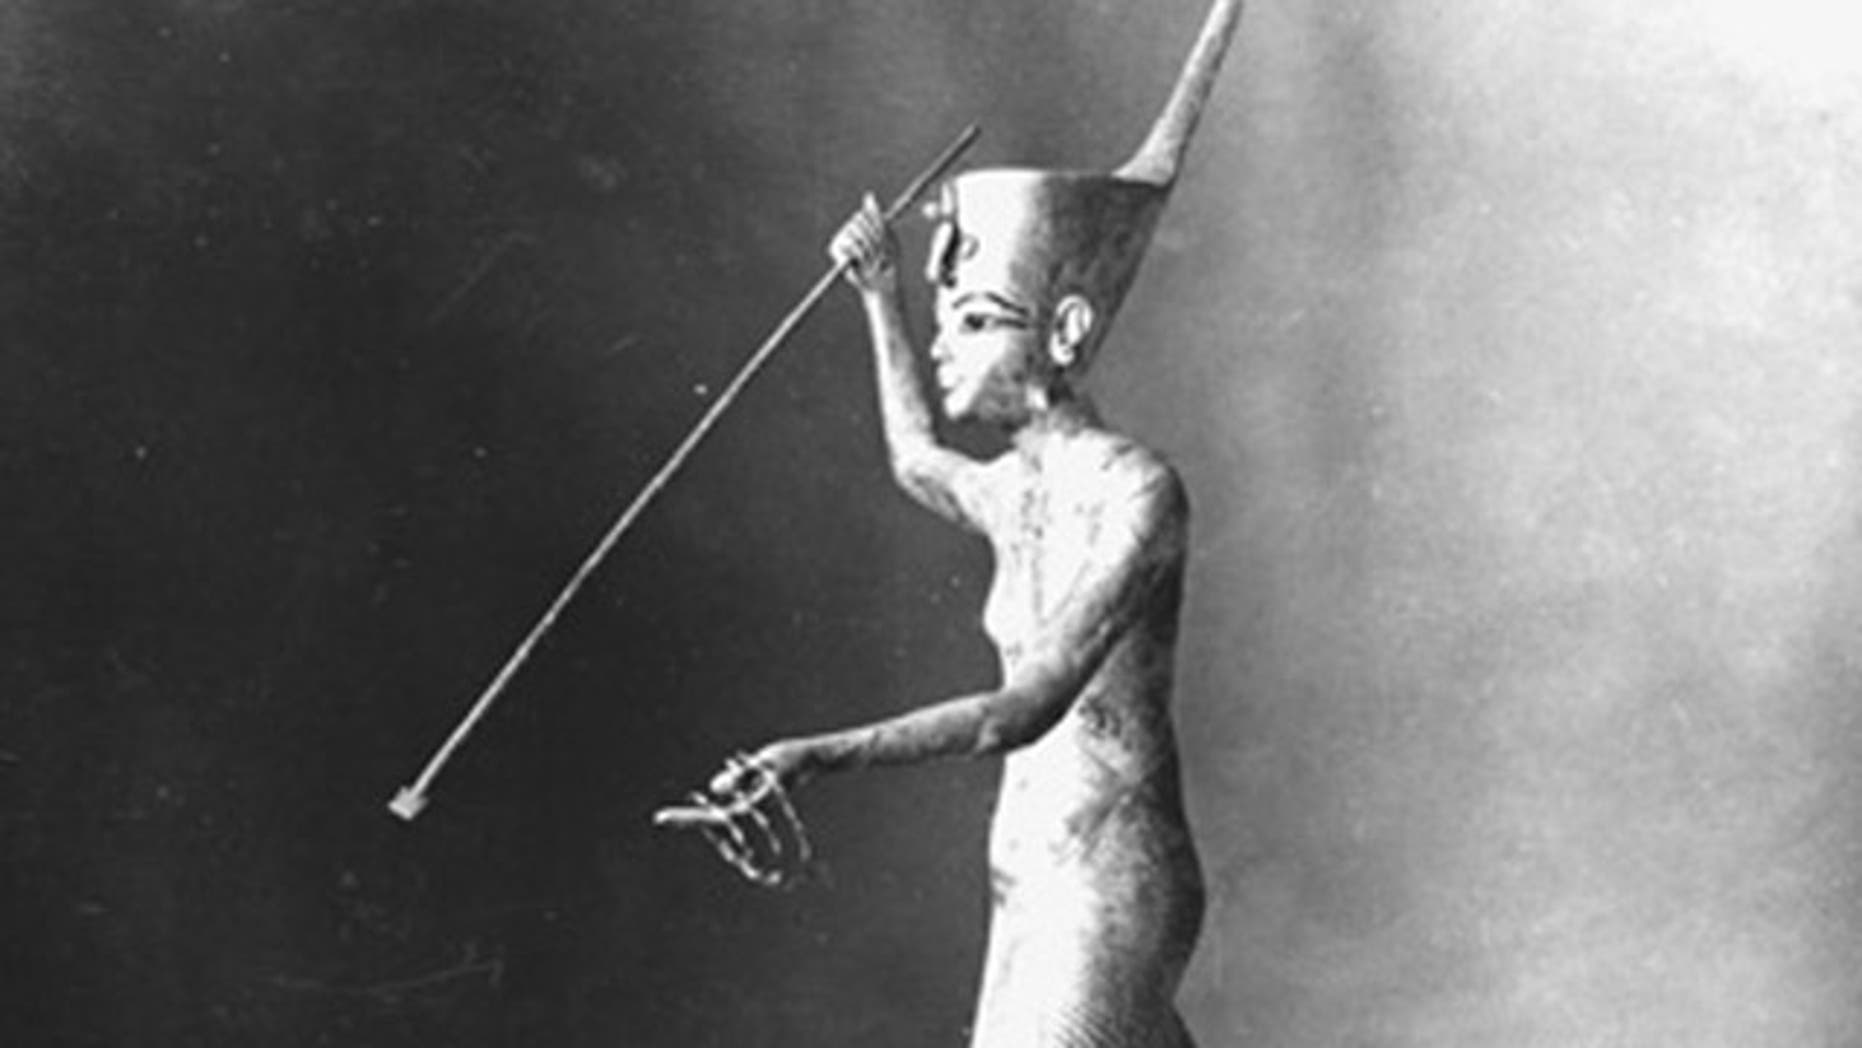 This undated photo released by the Egyptian Ministry of Antiquities shows a gilded wooden statue of King Tutankhamun harpooning. According to the Ministry of Antiquities, a full inventory of the Egyptian Museum has found that looters escaped with 18 items, including this one, during the anti-government unrest.